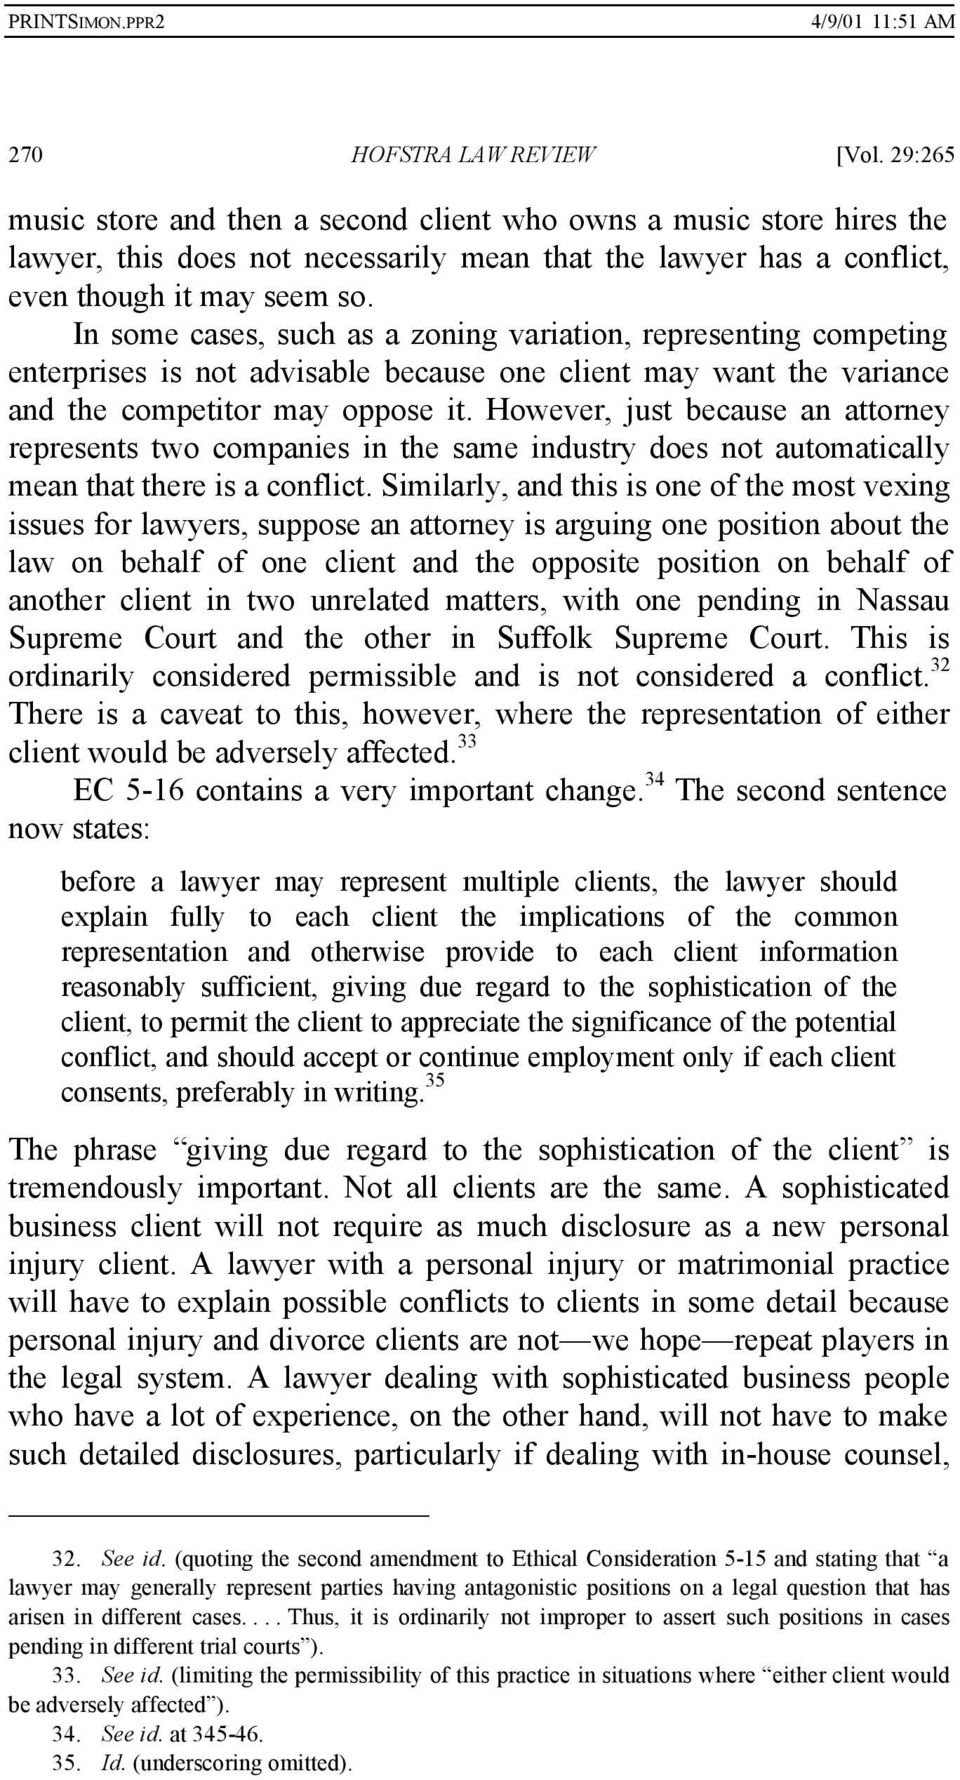 In some cases, such as a zoning variation, representing competing enterprises is not advisable because one client may want the variance and the competitor may oppose it.